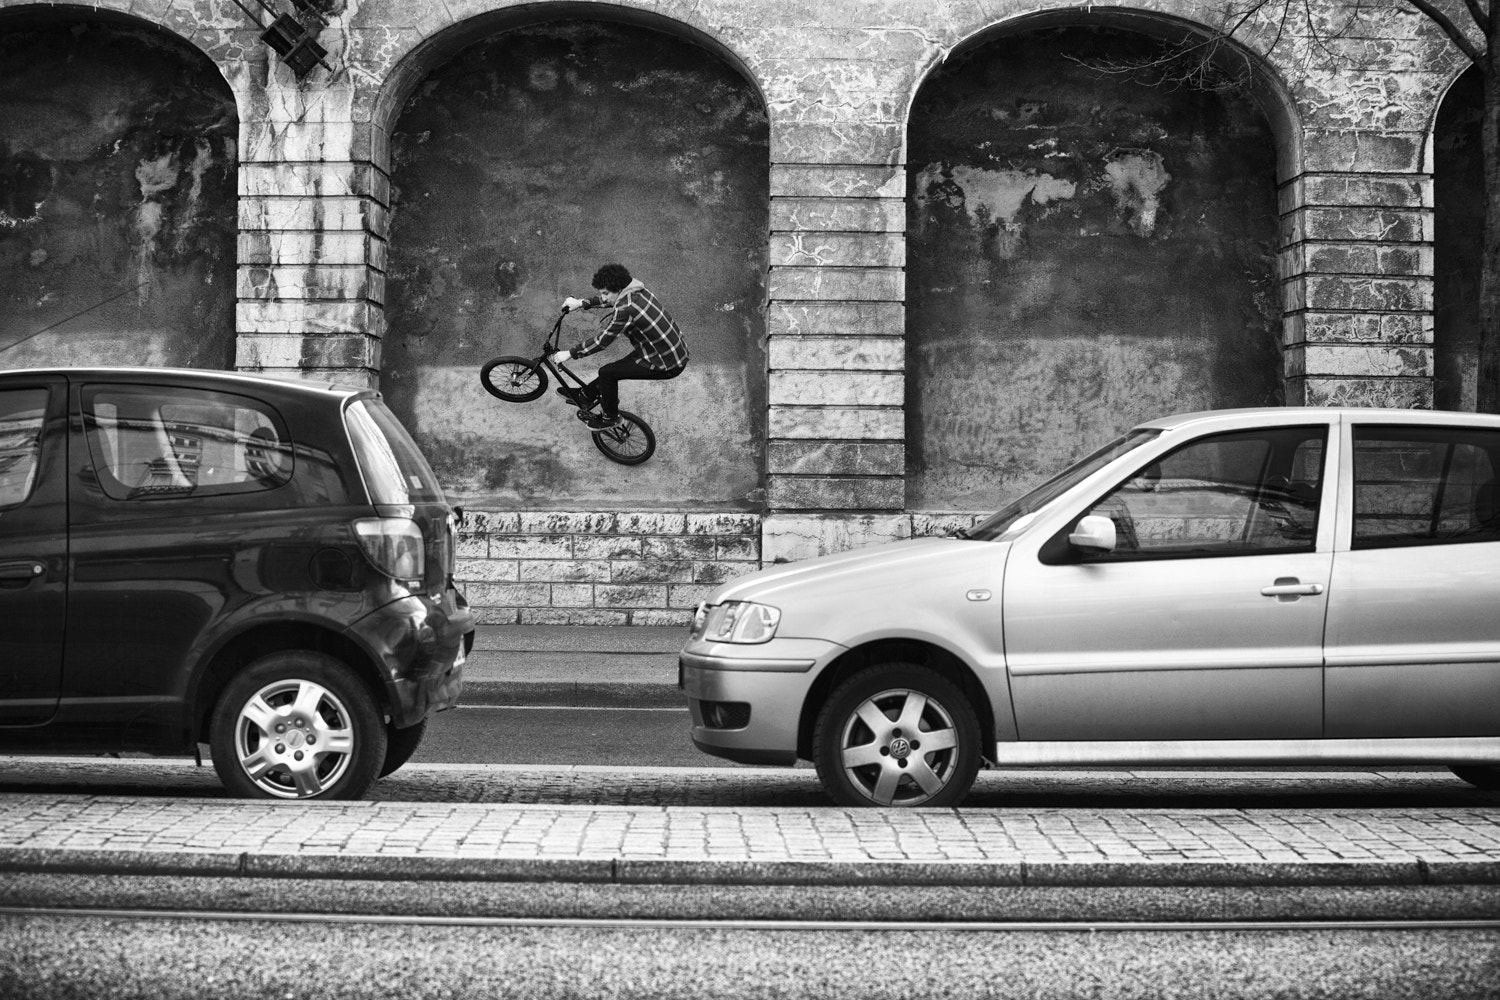 Photograph The street by Guillaume Ducreux on 500px